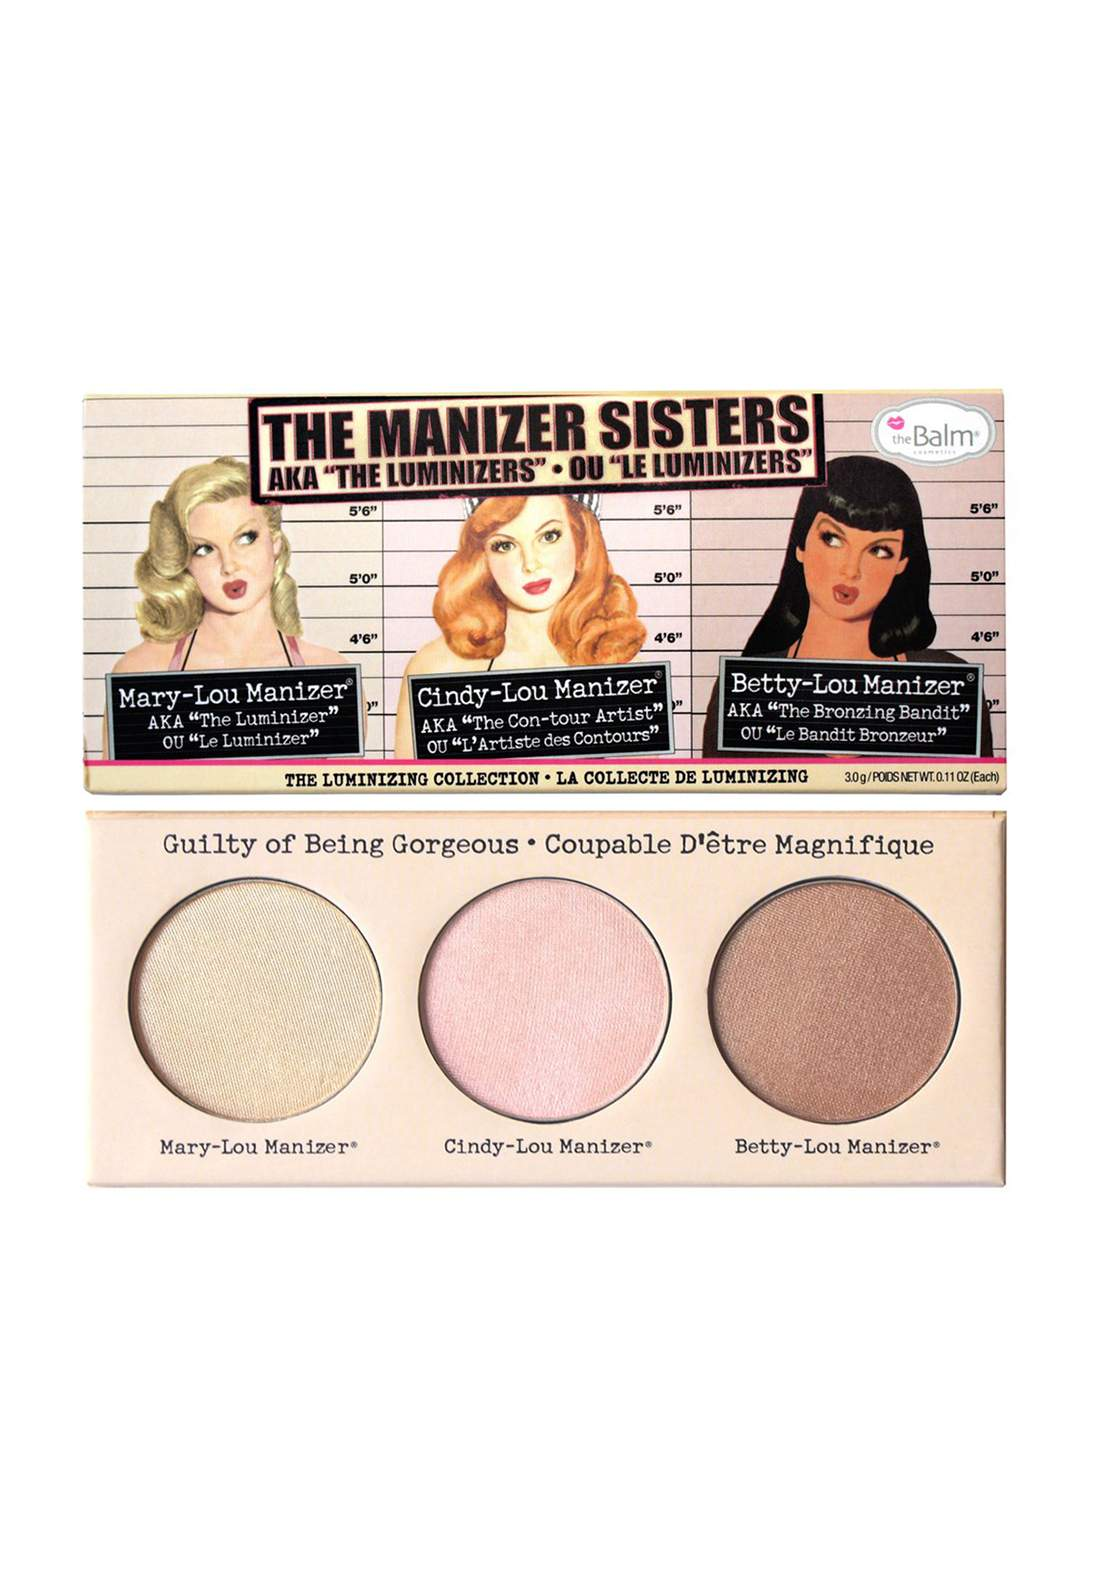 (299-0049)The Balm The Manizer Sisters Highlighter Palette باليت اضاءة